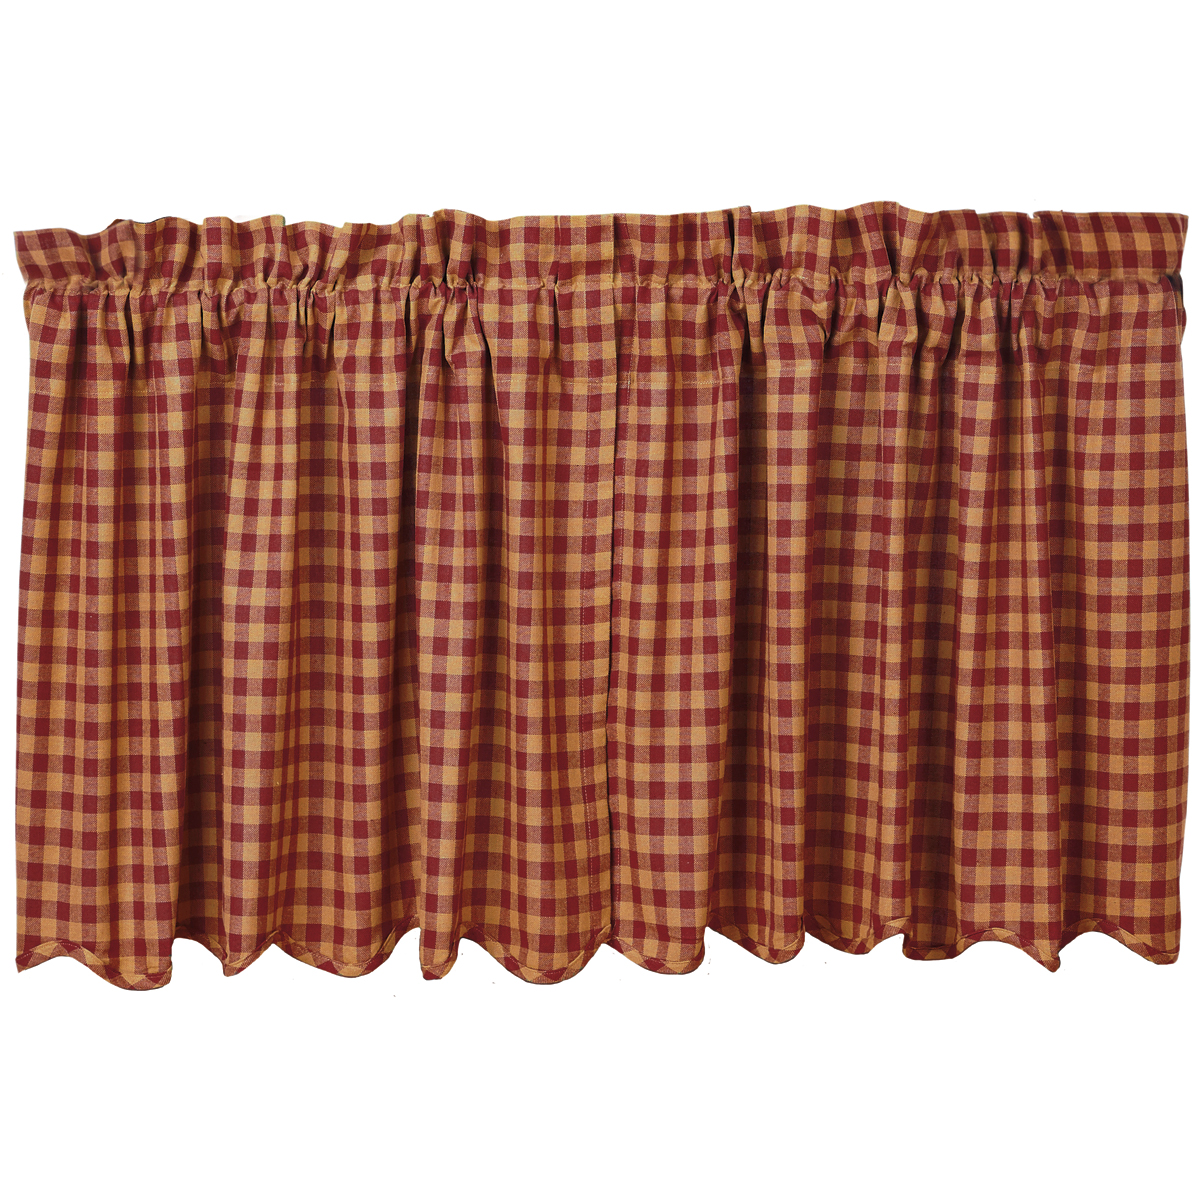 BURGUNDY CHECK Scalloped Tier - Set of 2 - 24x36 - Burgundy/Tan - VHC Brands